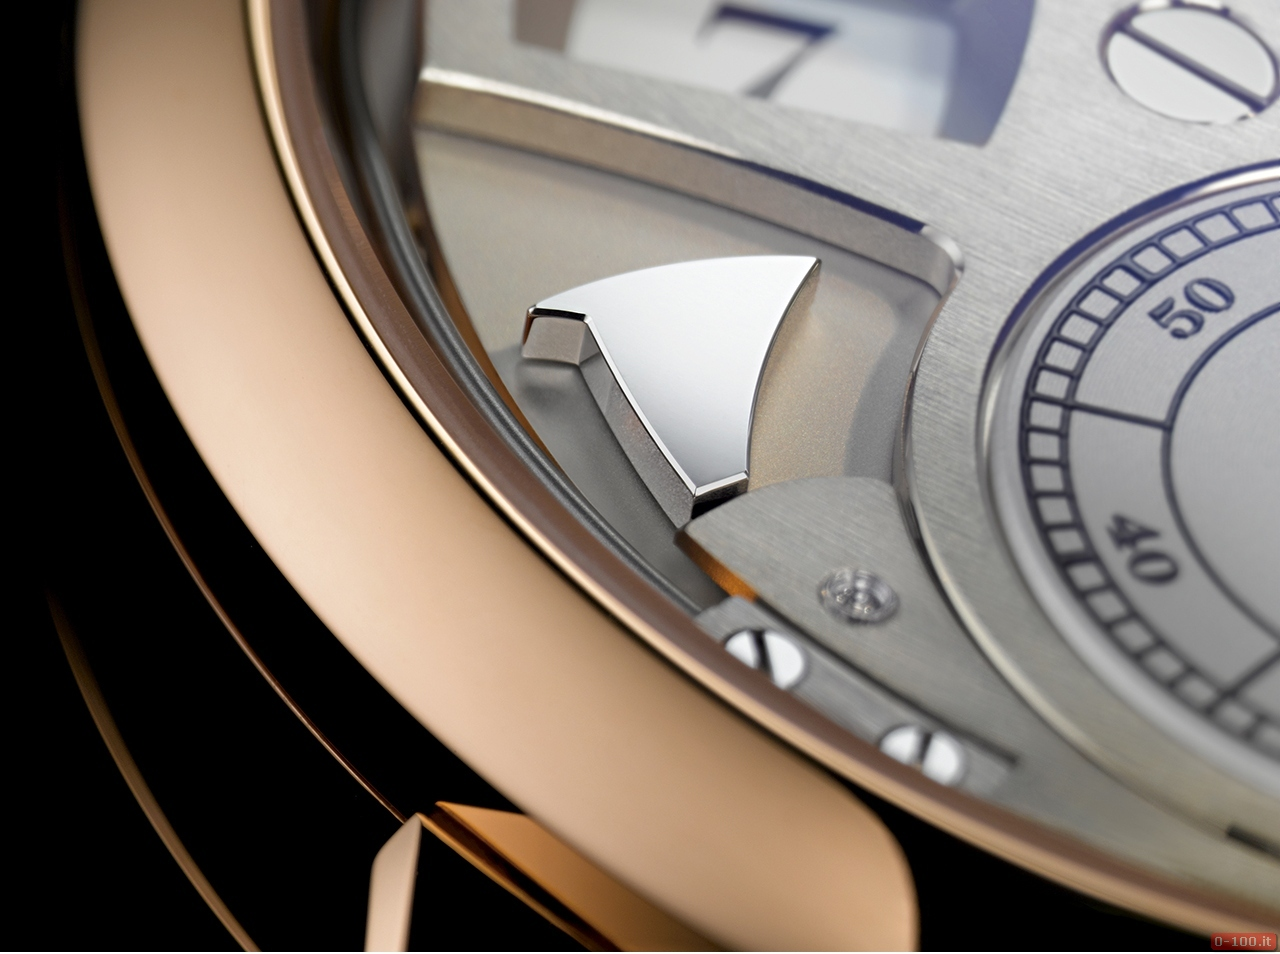 sihh-2014-lange-sohne-lange-zeitwerk-striking-time-prezzo-price_0-1003